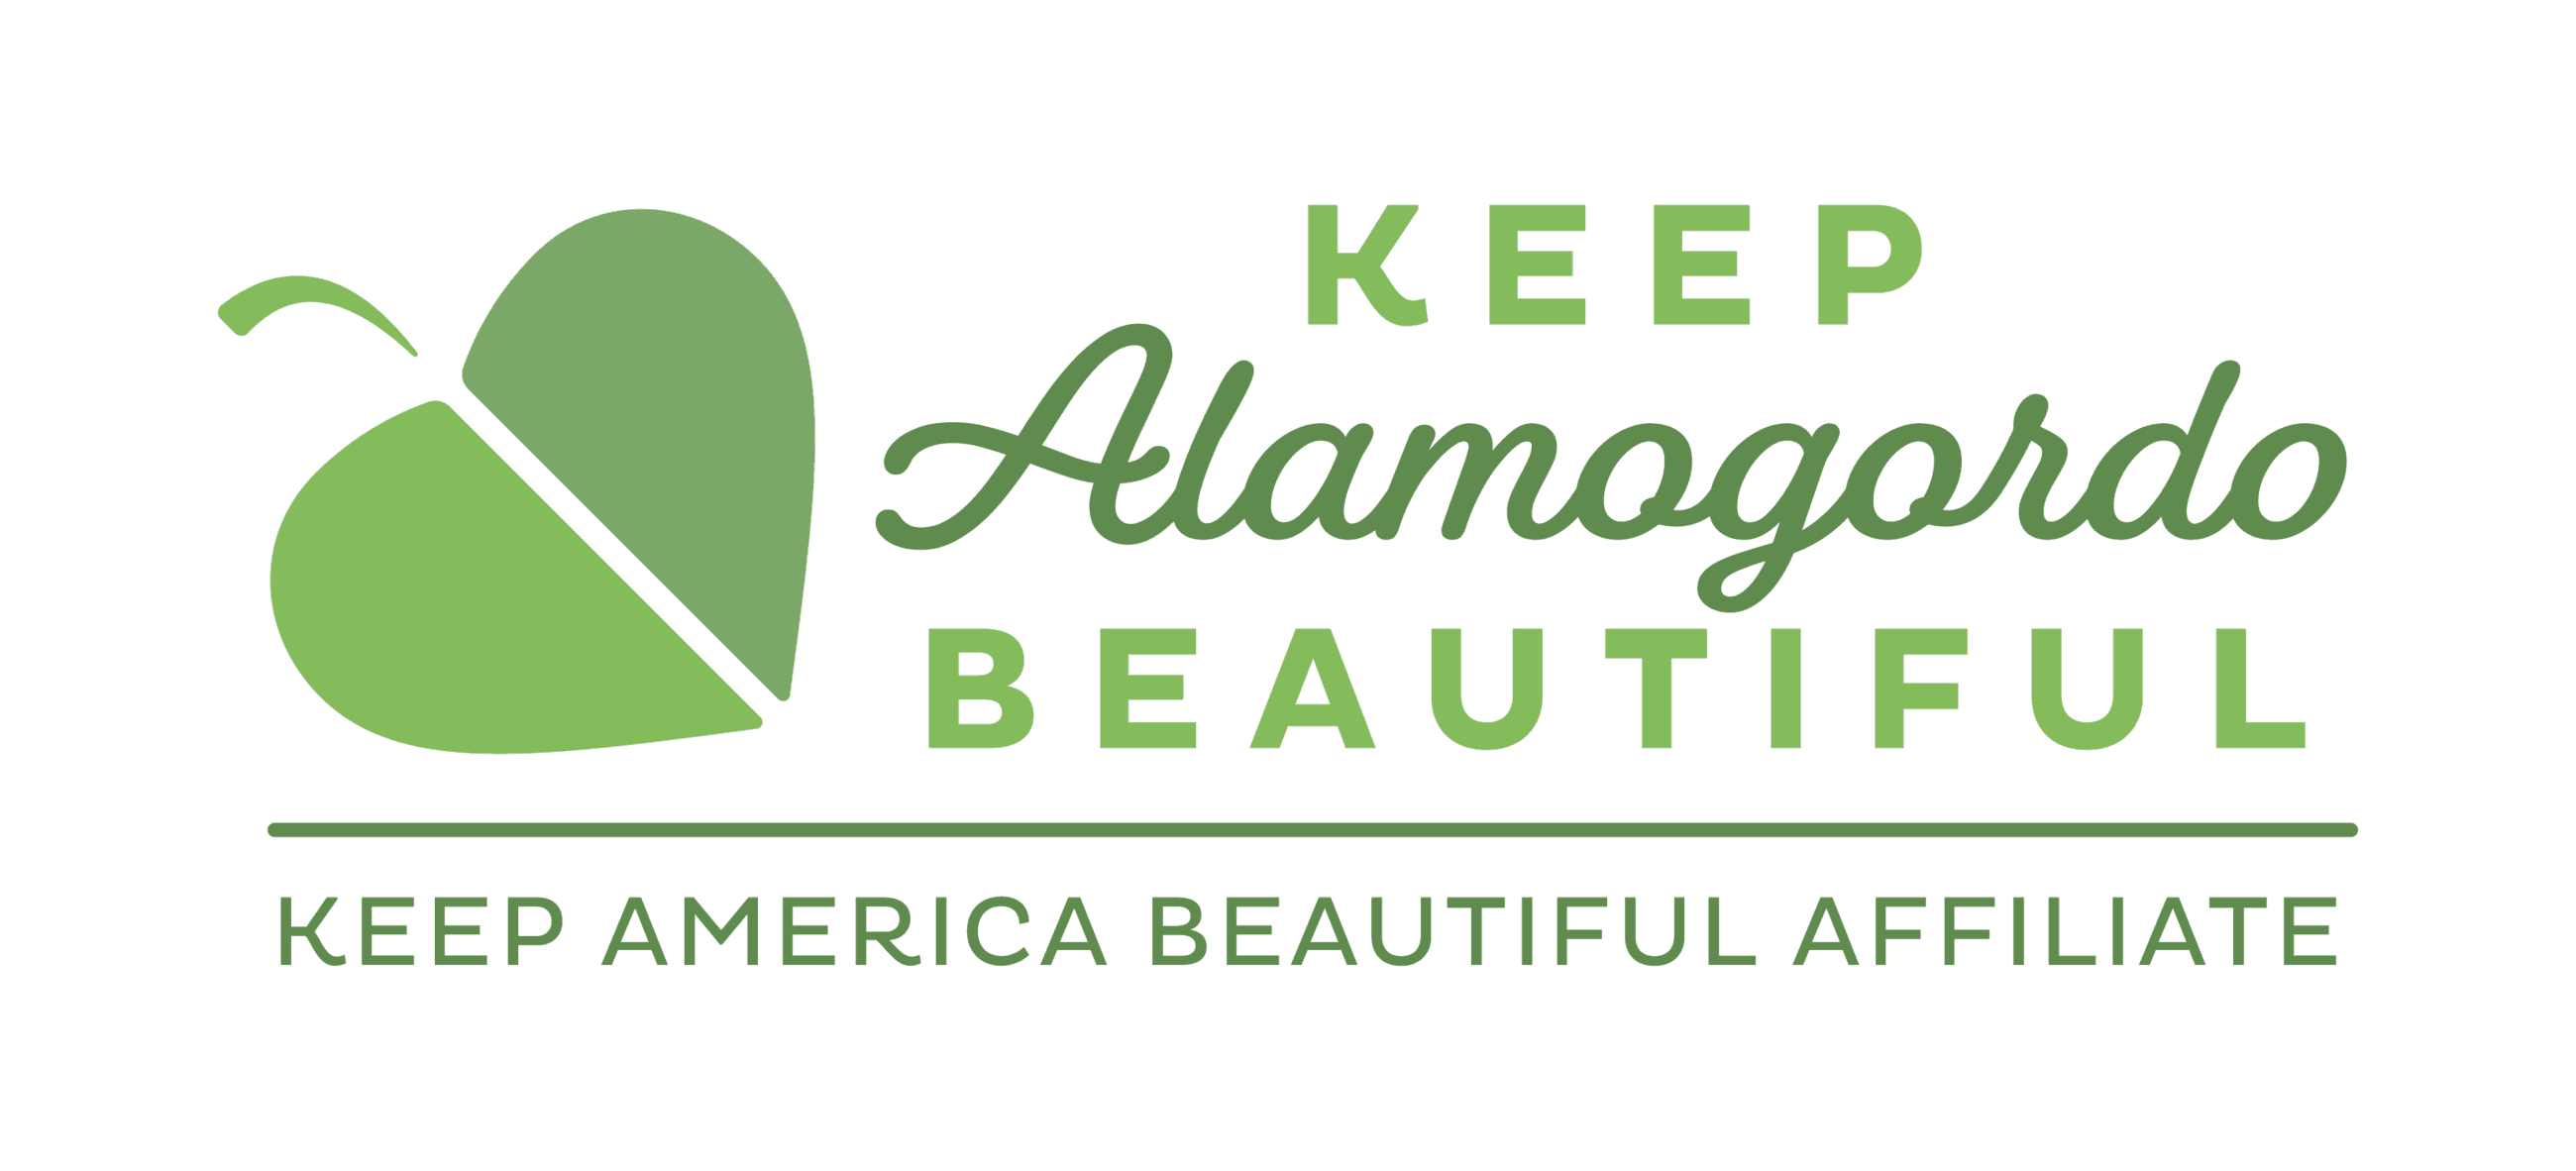 City of Alamogordo: Keep Alamogordo Beautiful Awarded President's Circle Recognition